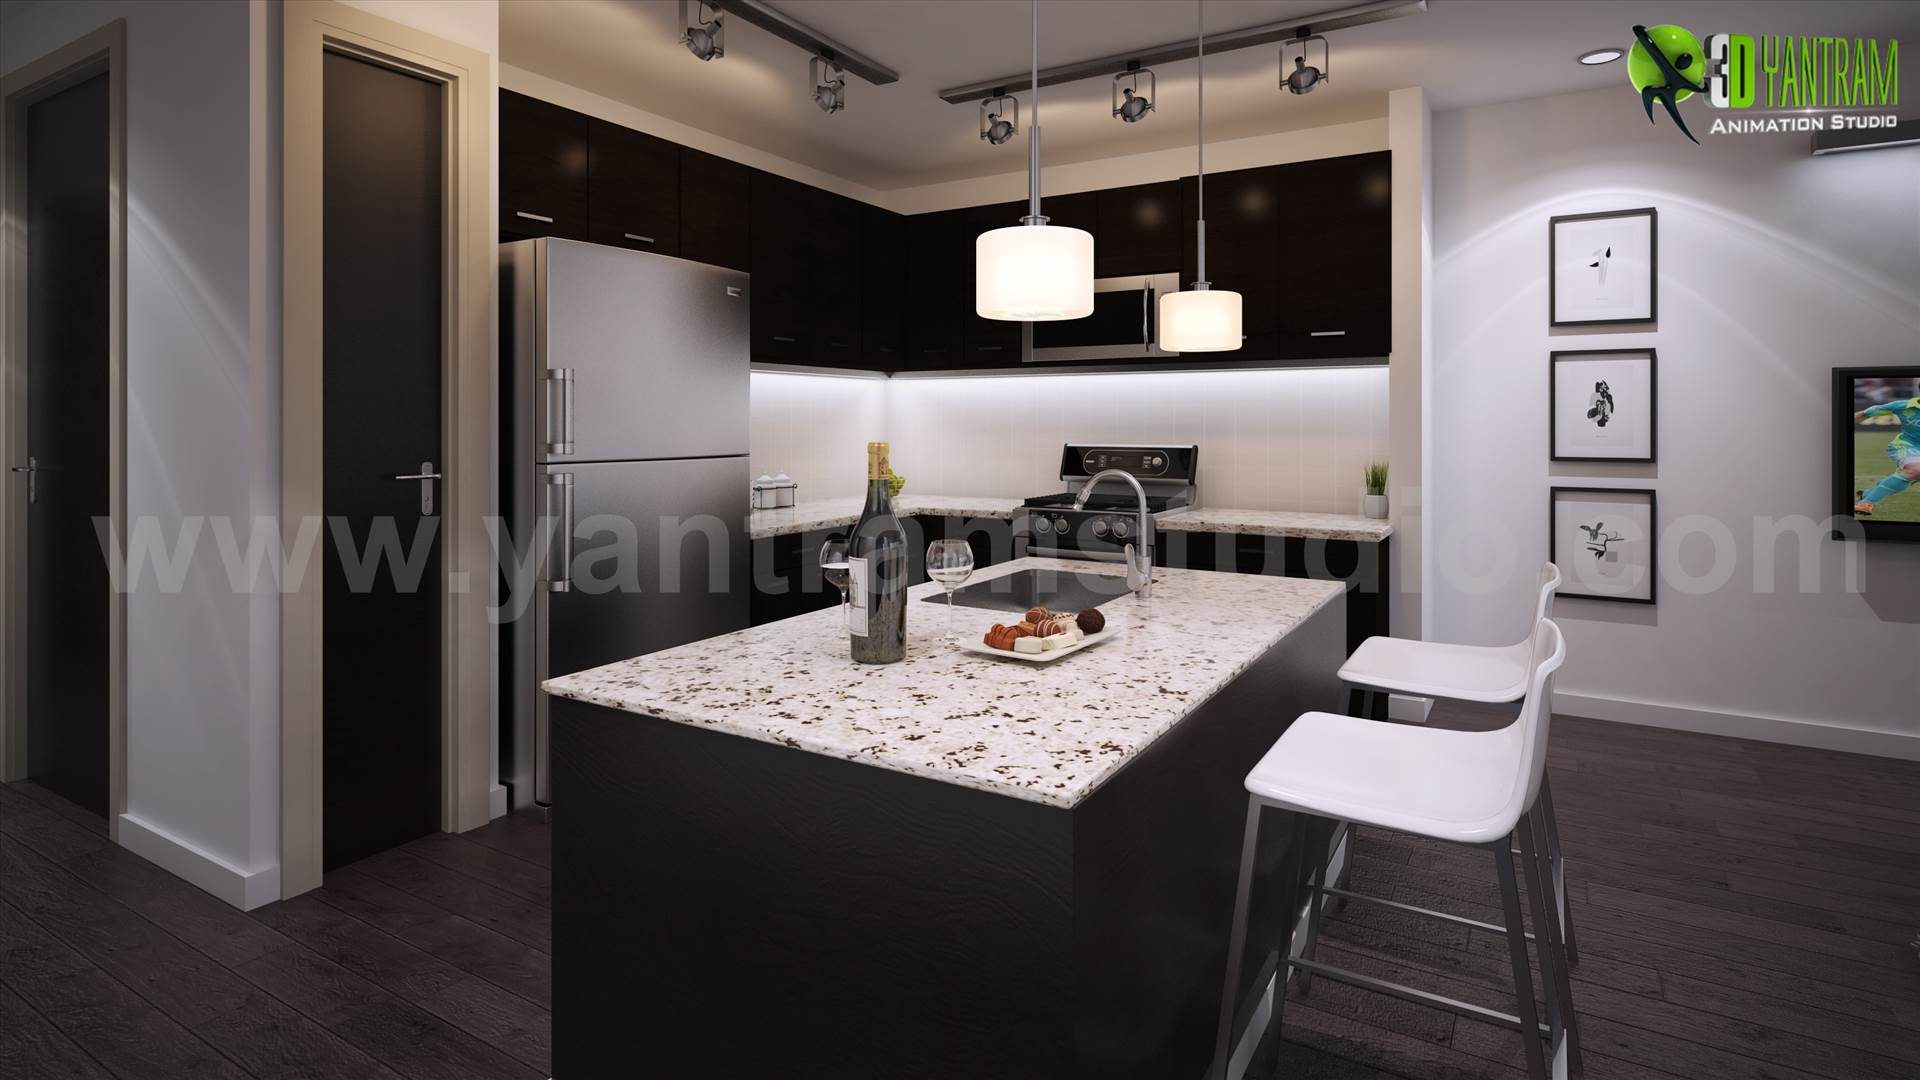 Beautiful Modern Kitchen Layout Design Ideas Example Of Interior Living Room And Kitchen Design Yantramstudio